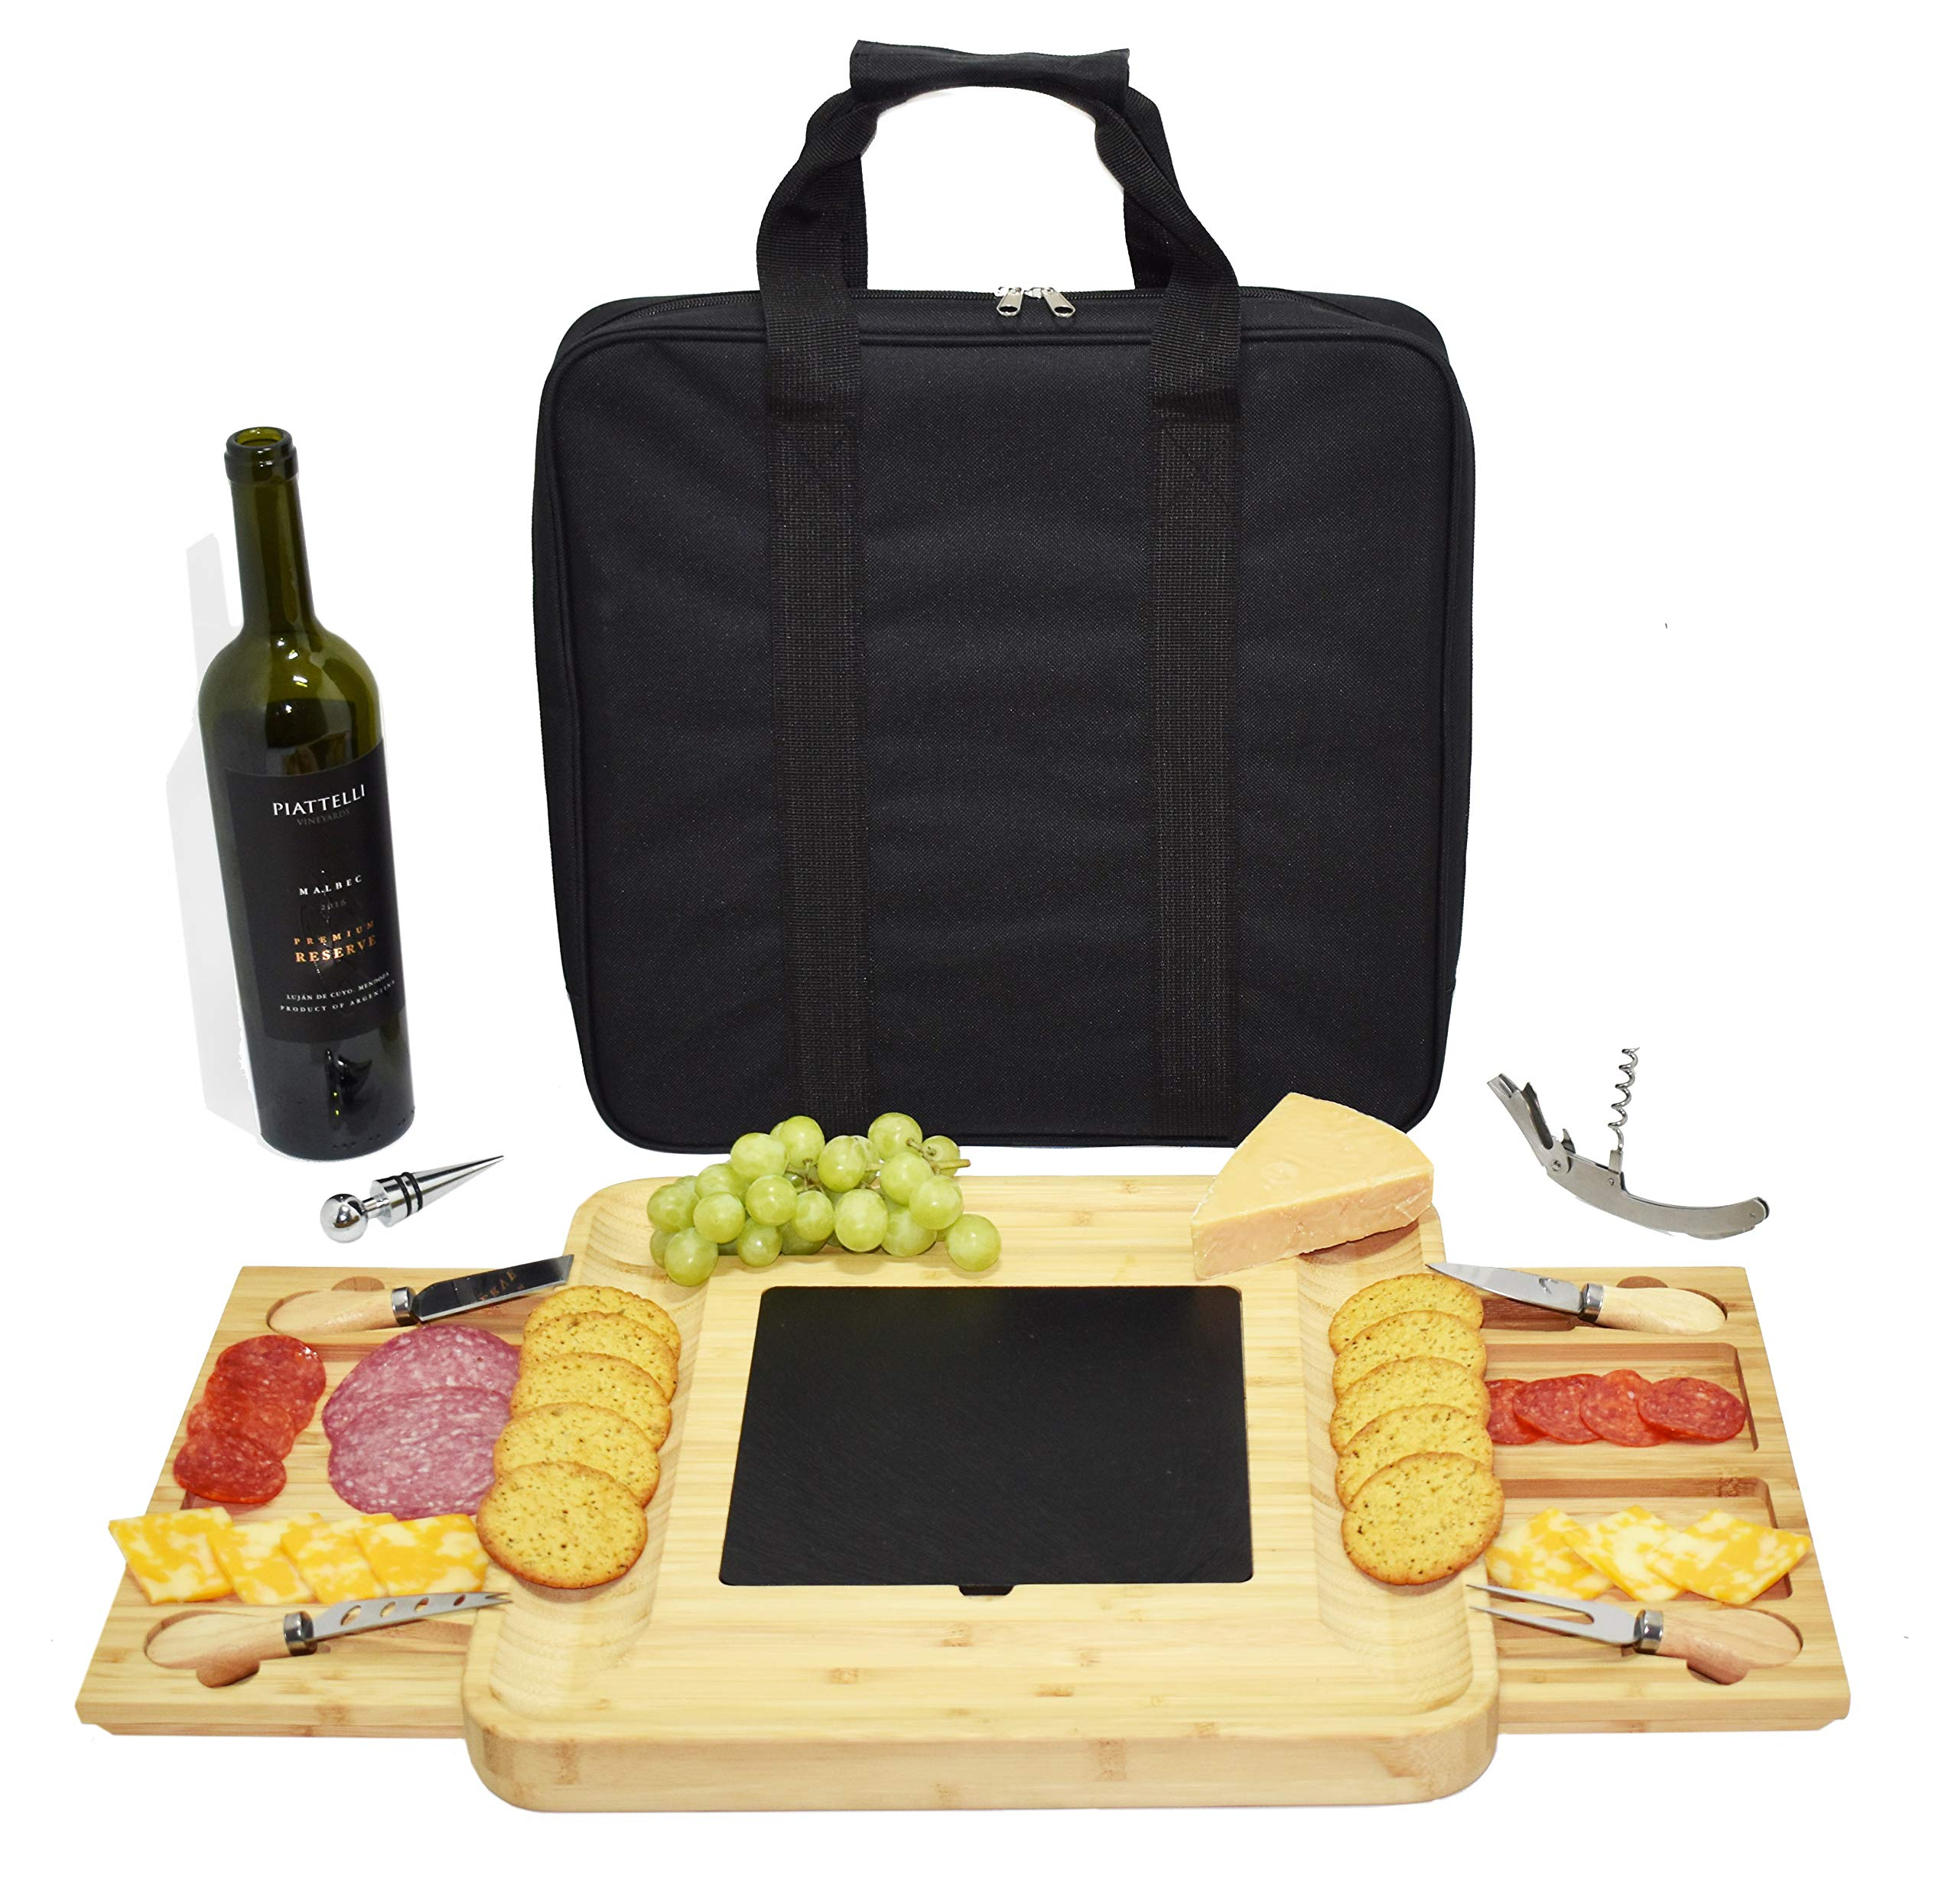 Cheese Board With Knife Set And Carrying Case I Charcuterie Board I Serving Tray I Cutlery Set I Large Size I Wine Bottle Opener And Wine Stopper by SKOTTY'S